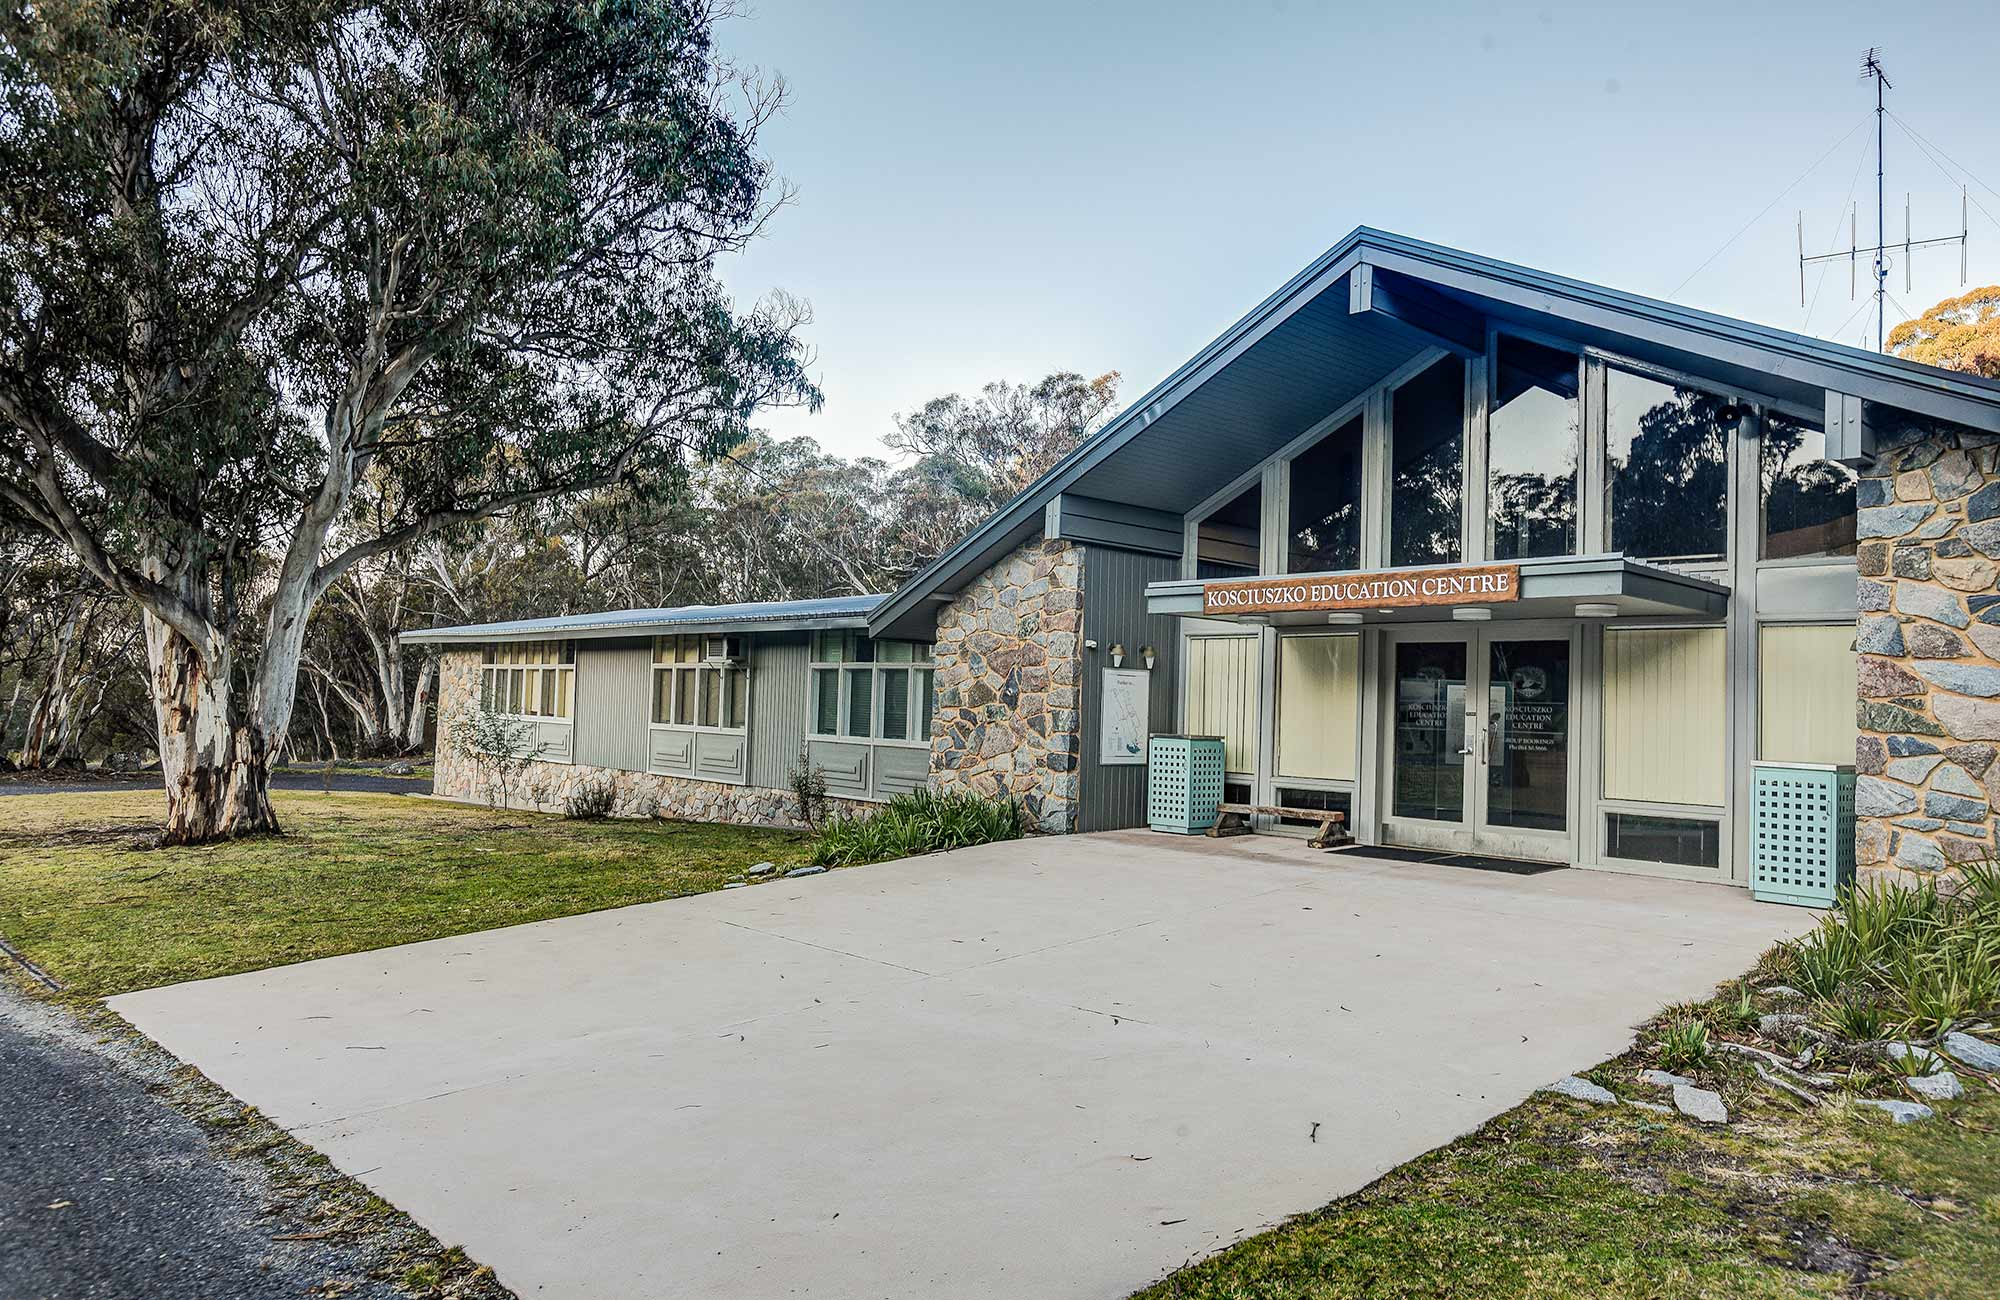 Kosciuszko Education Centre, Kosciuszko National Park. Photo: Murray Vanderveer